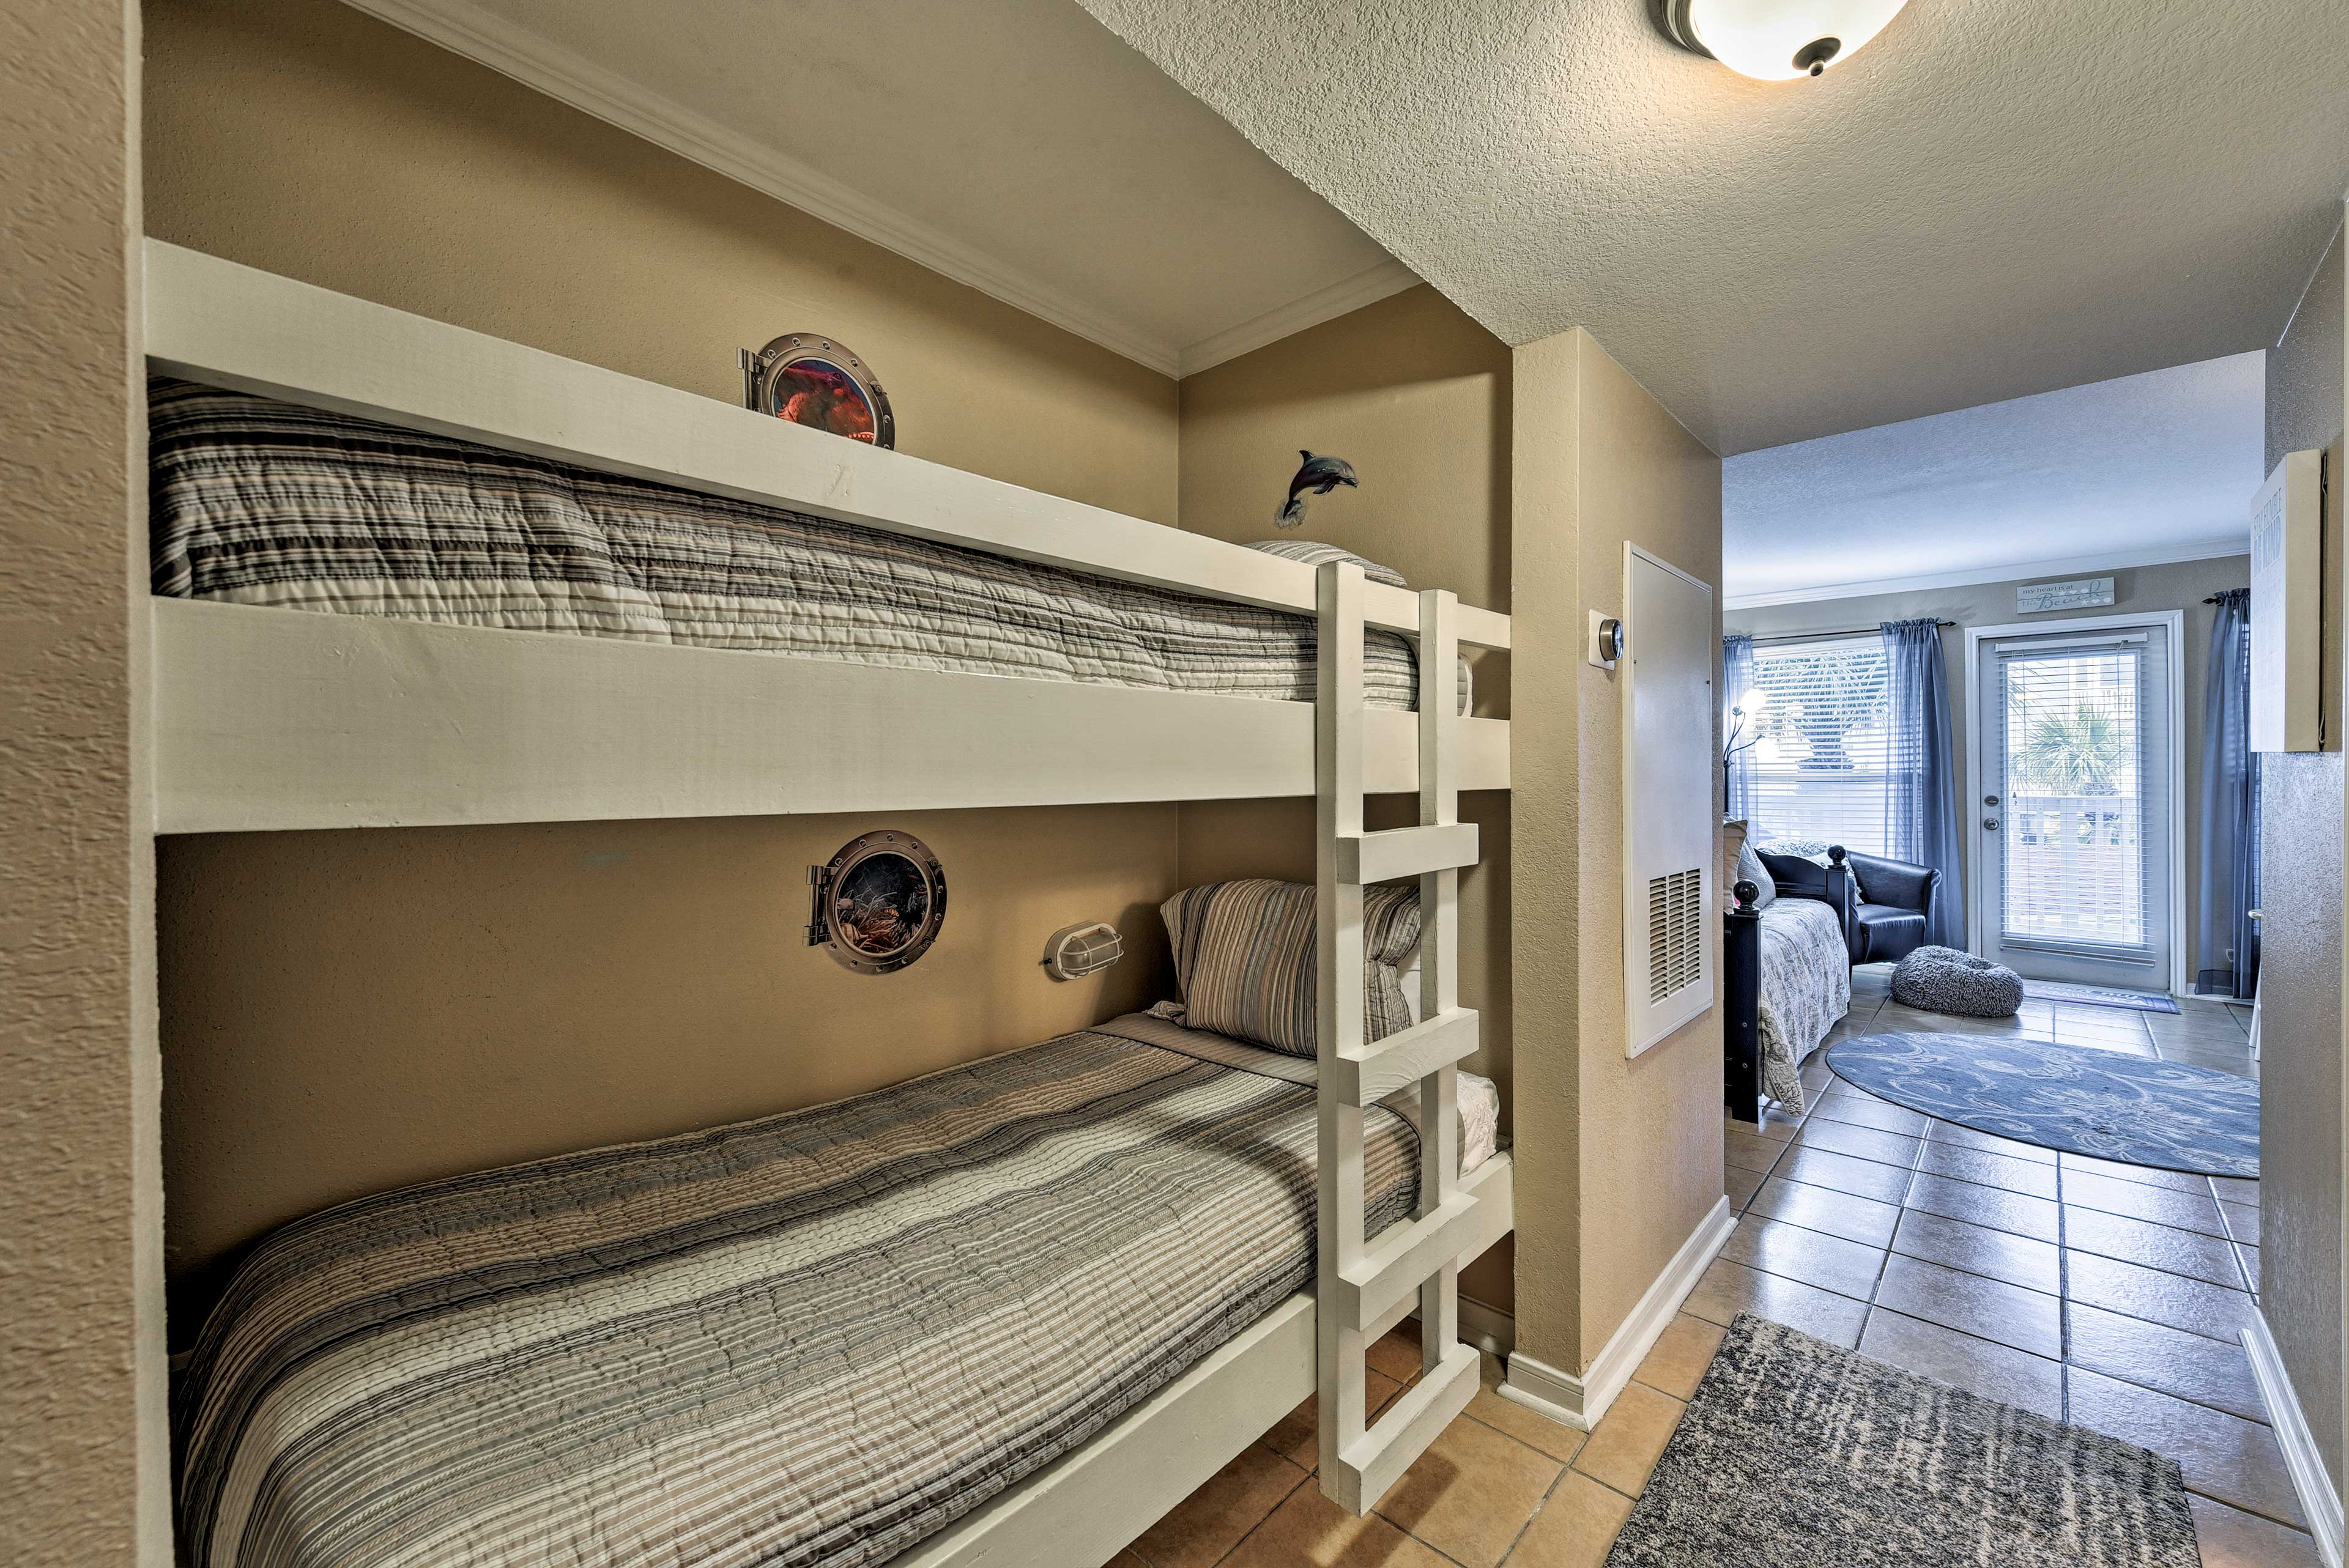 Sleep up to 2 guests in this twin-over-twin bunk bed.